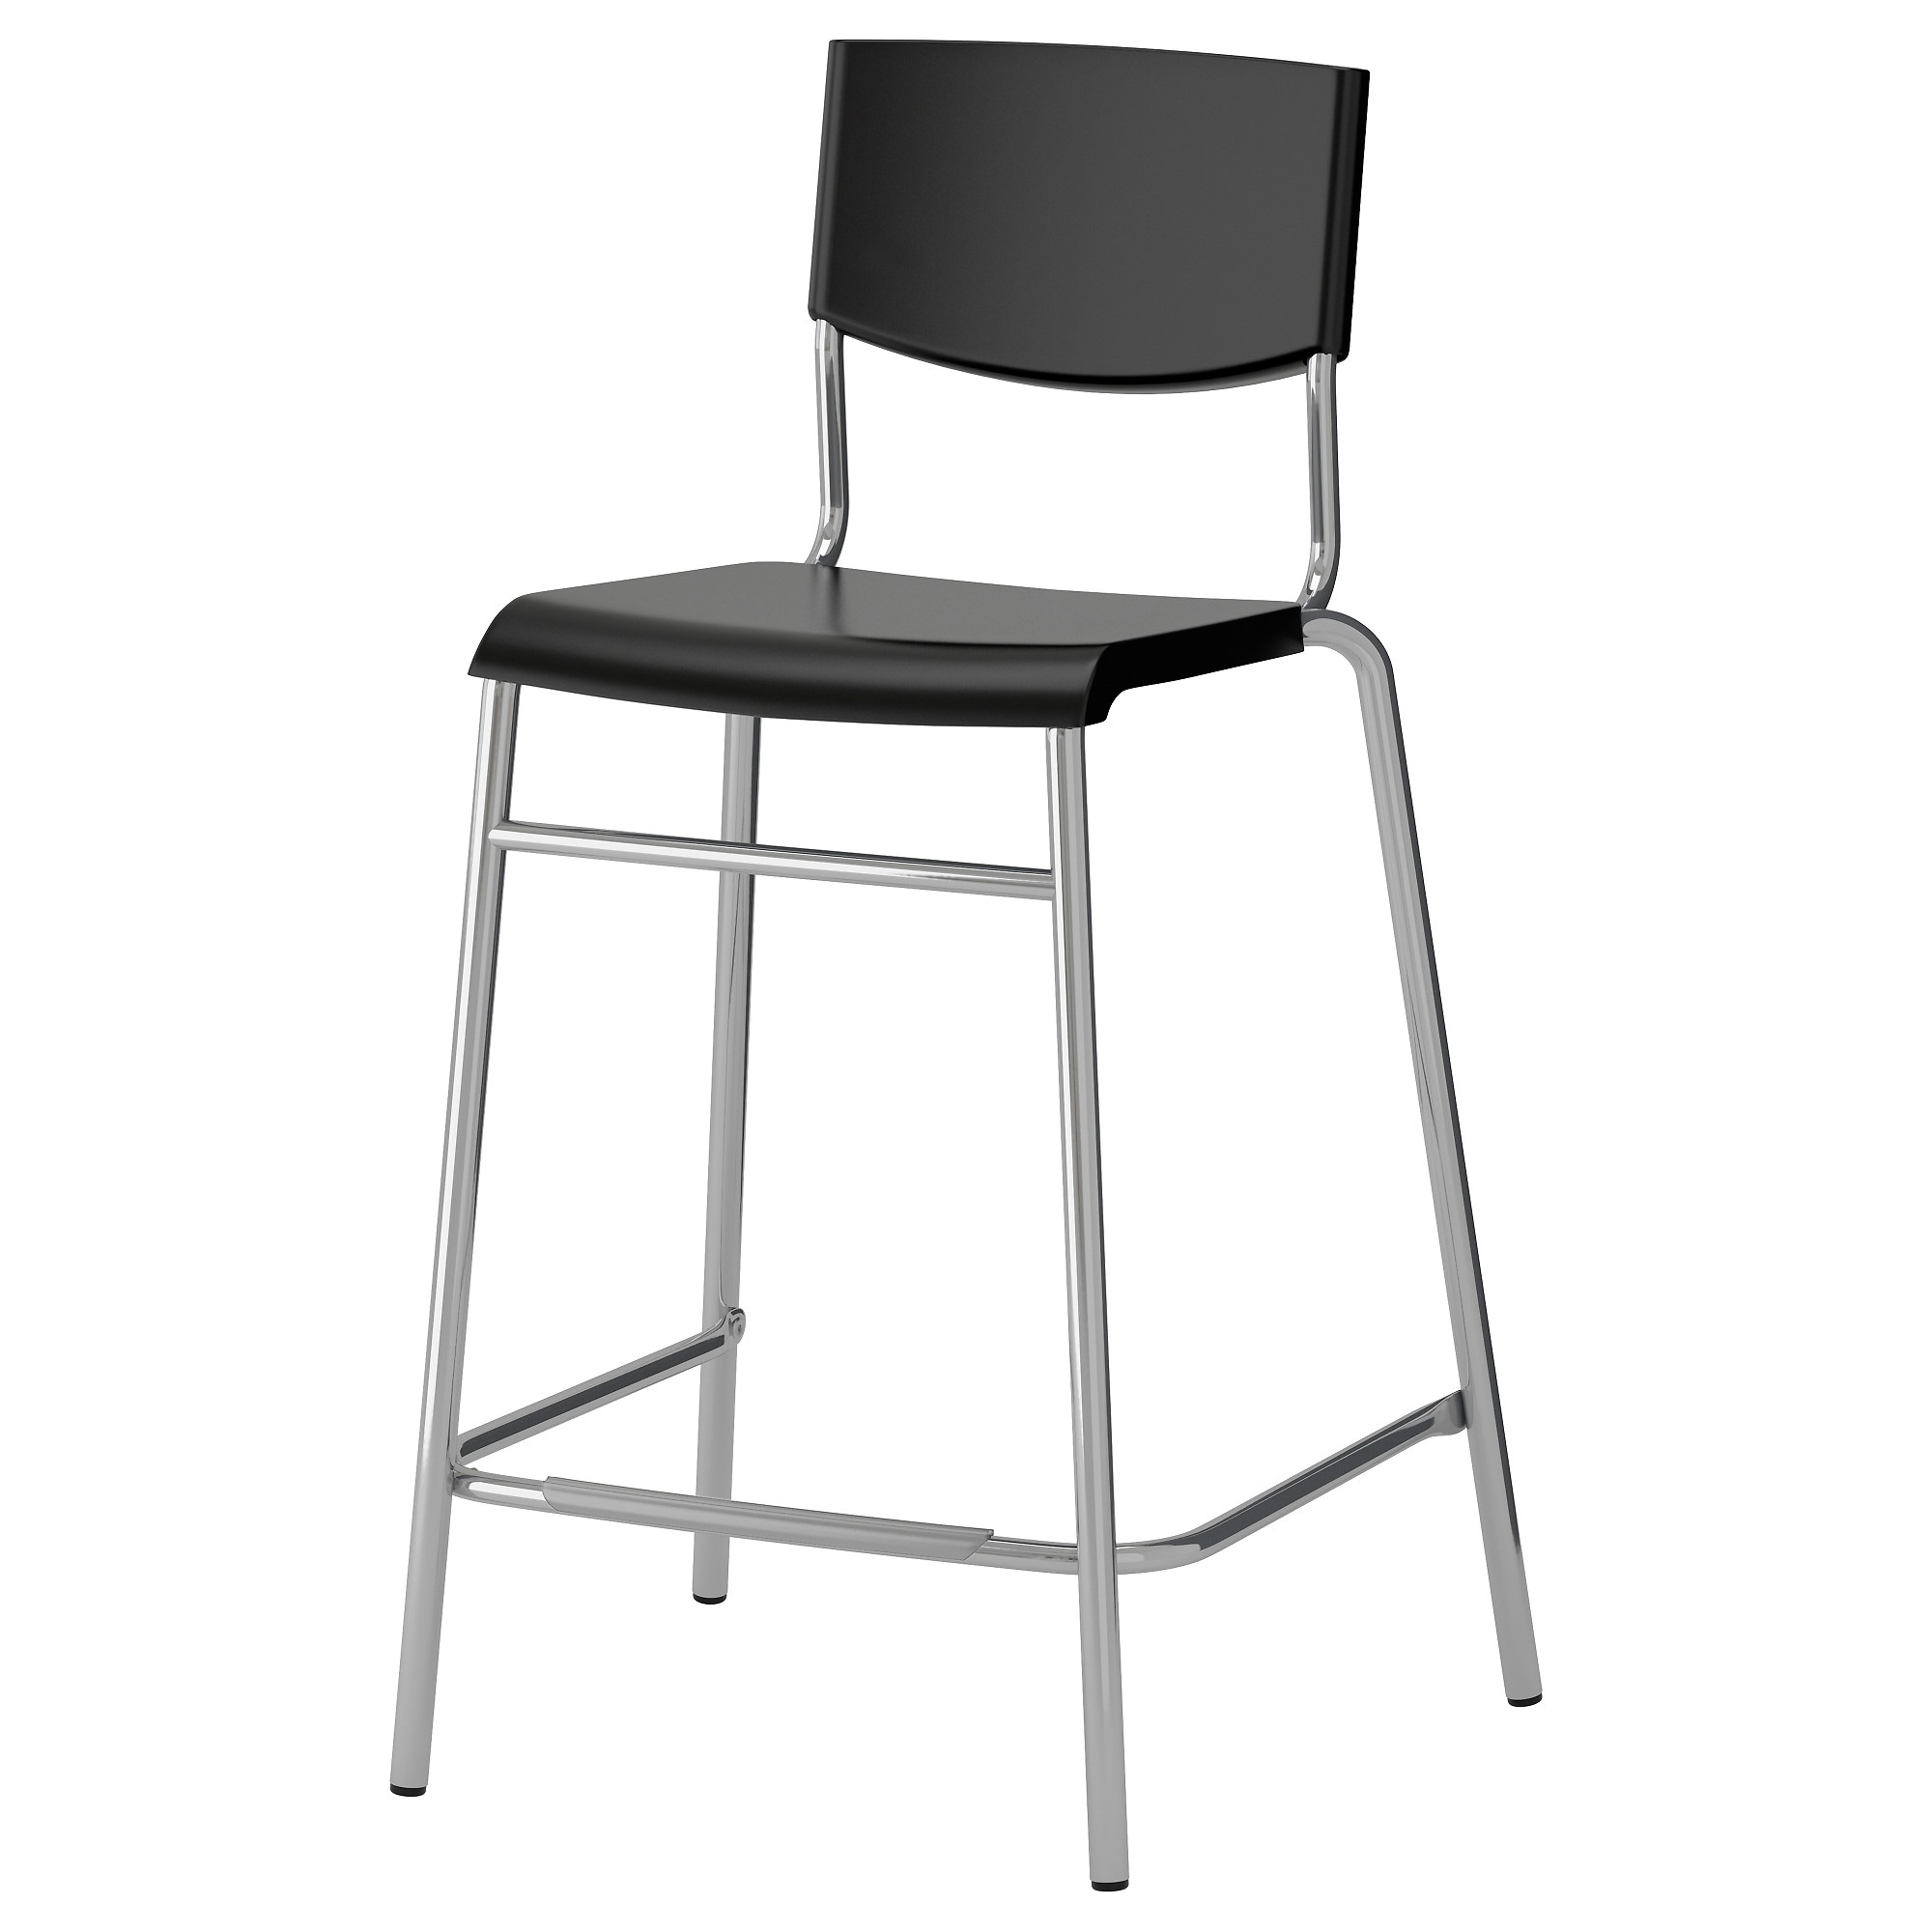 bar tables  bar stools  ikea - stig bar stool with backrest black silver color tested for  lb width